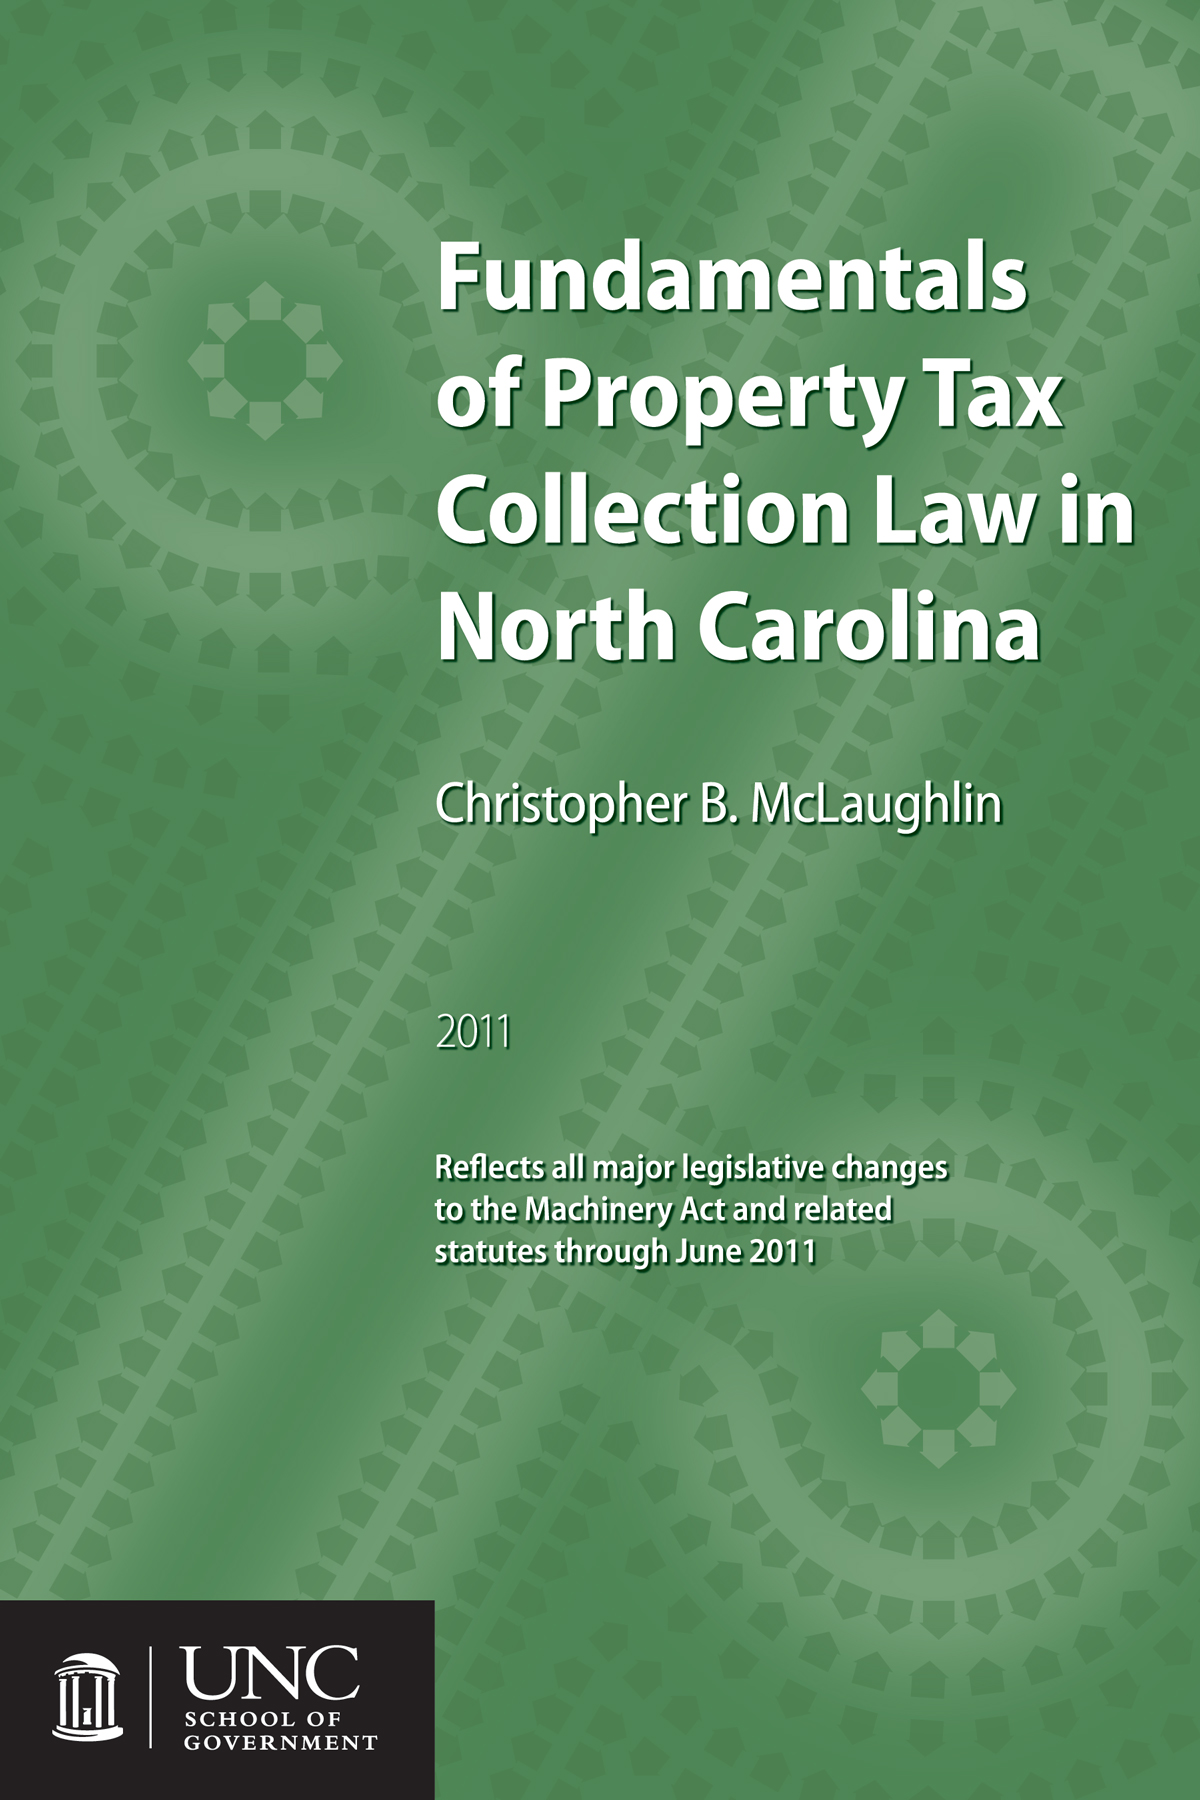 Cover image for Fundamentals of Property Tax Collection Law in North Carolina